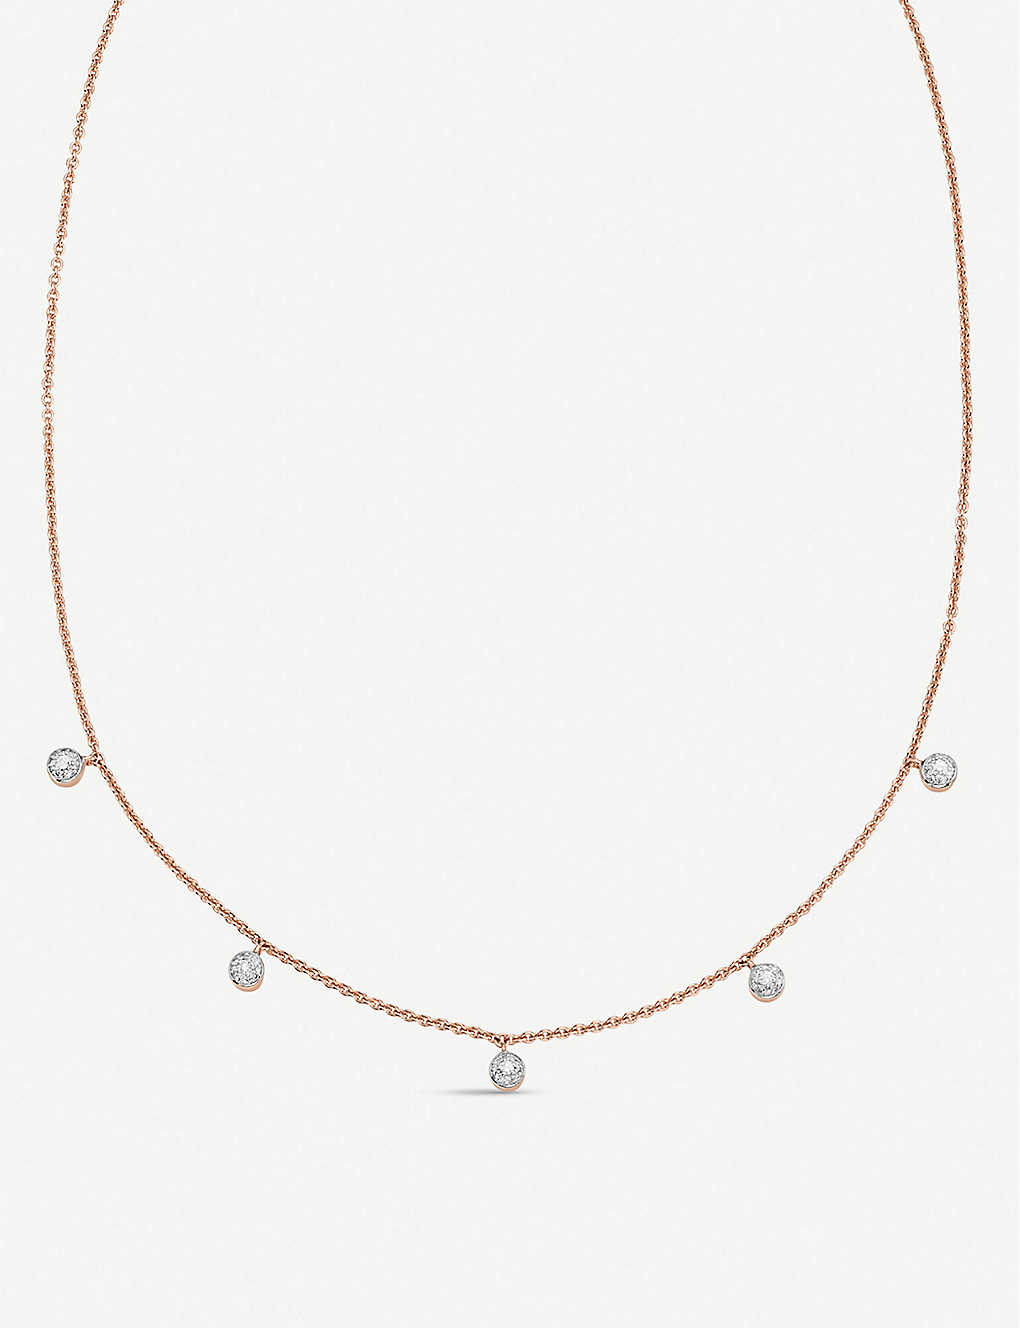 MONICA VINADER: Fiji Tiny Button 18ct rose gold-plated vermeil and diamond necklace